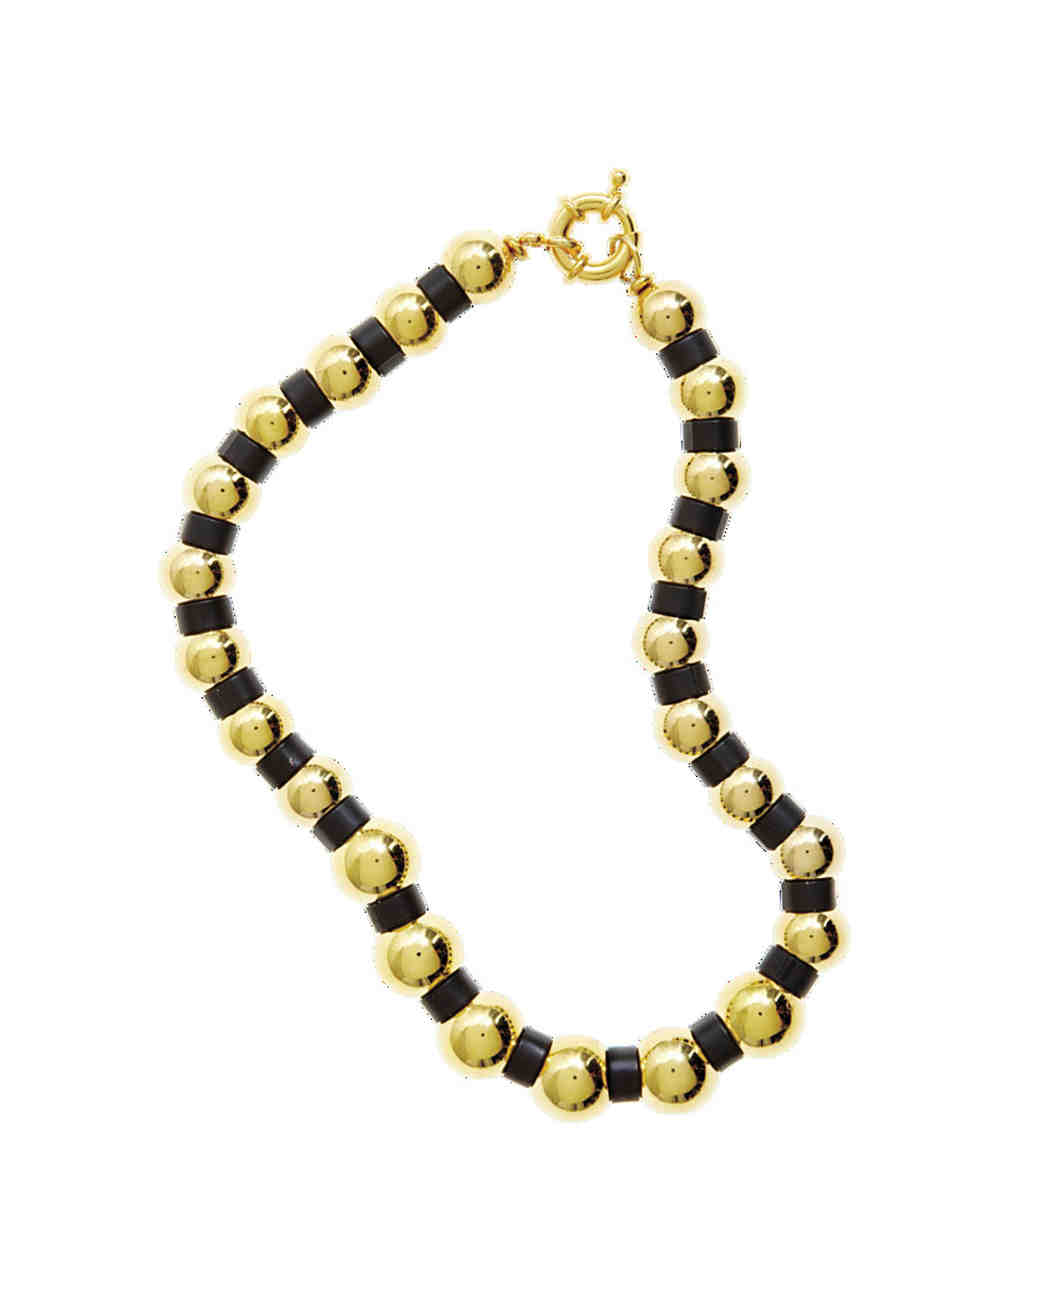 travel-accessories-necklace-mwd107604.jpg